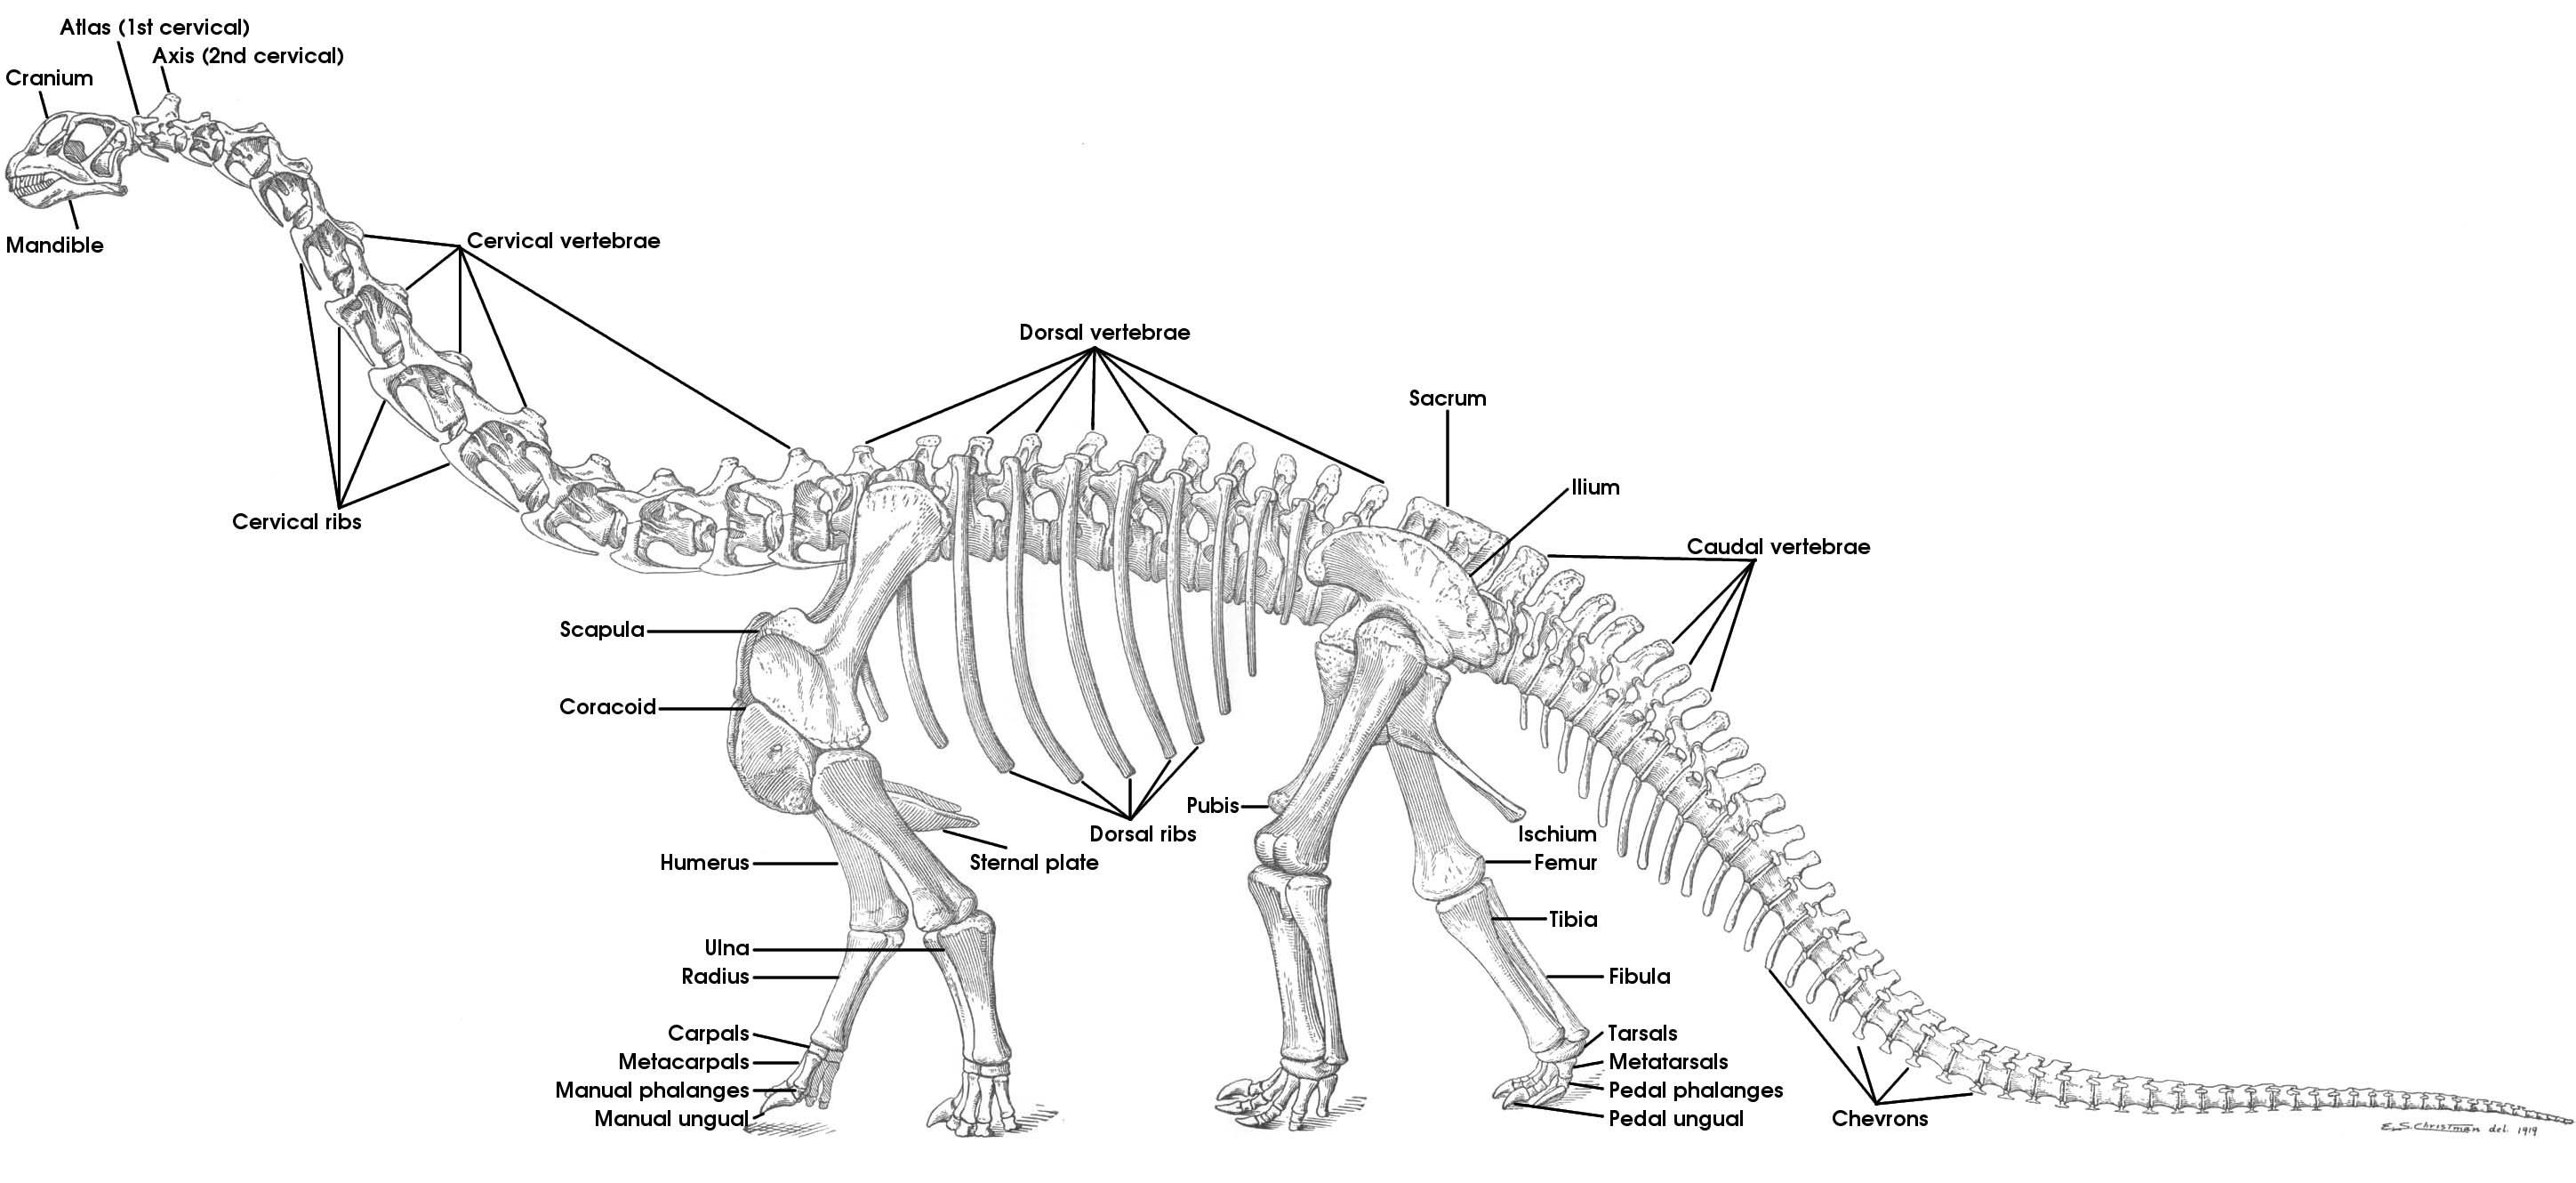 Camarasaurus Dinosaur Skeleton Anatomy Diagram